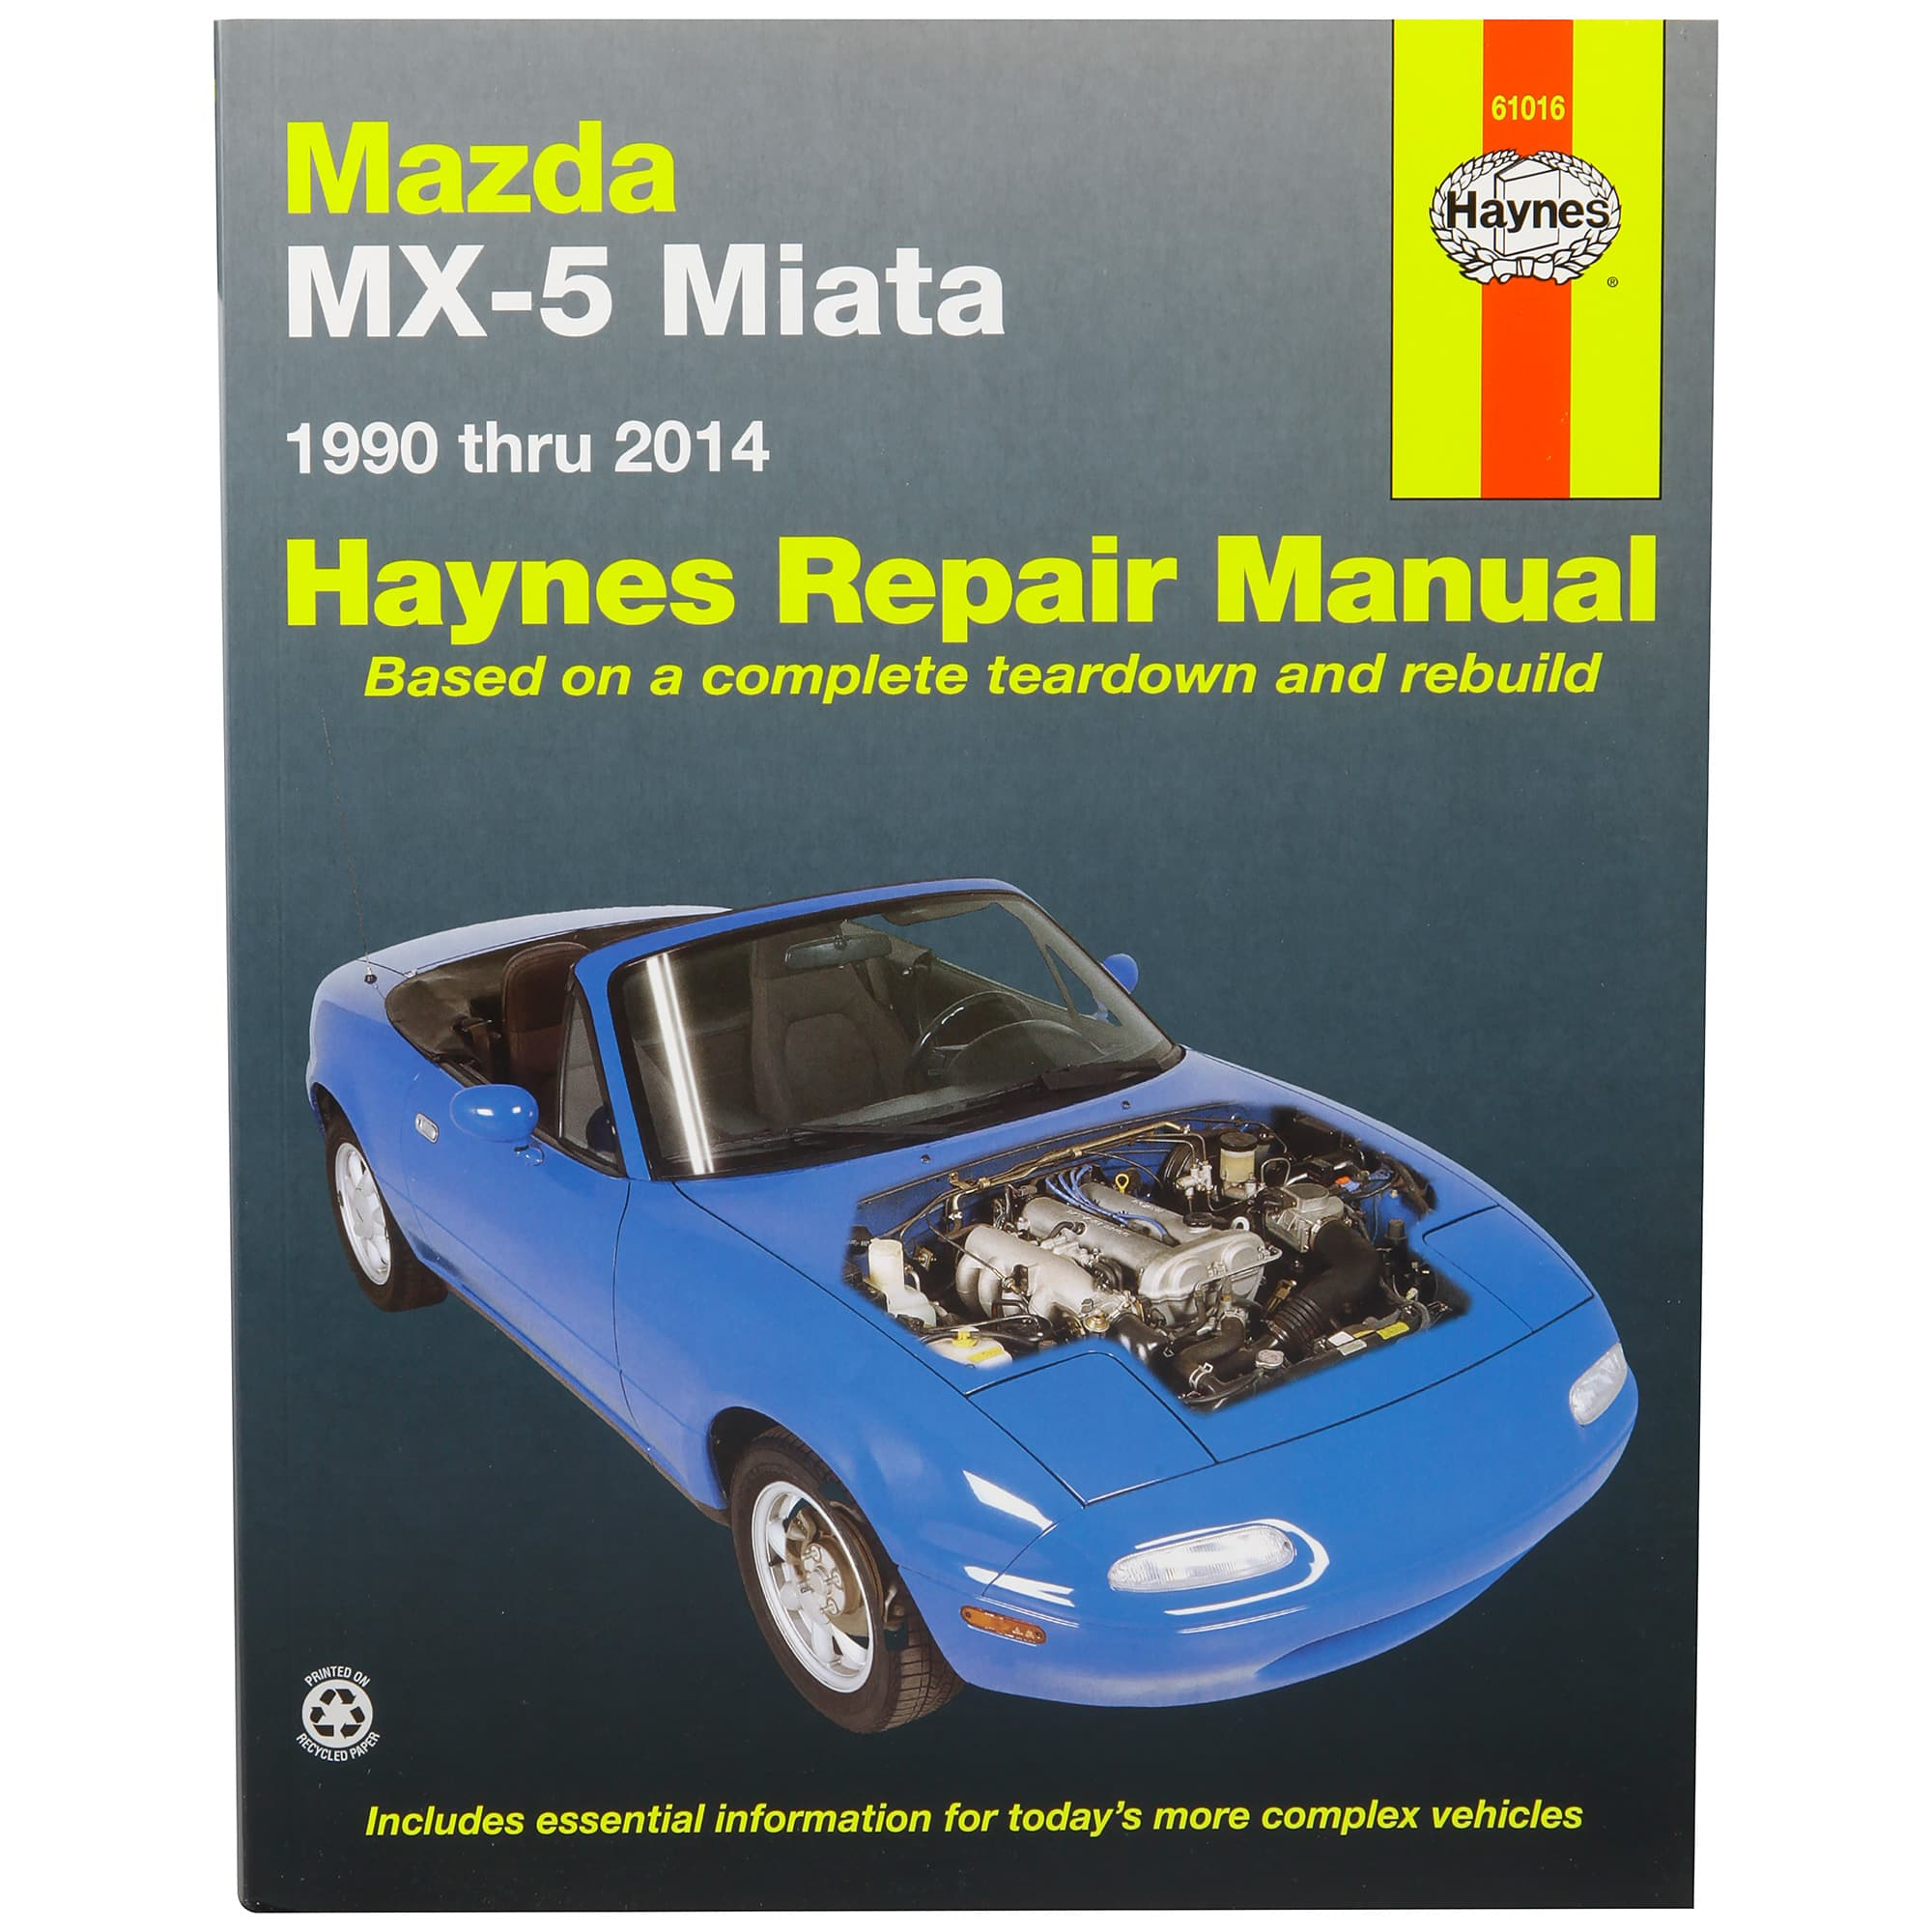 1990 Miata Electronic Service Manual One Word Quickstart Guide Book Fuse Box 904 707 Mazda Mx 5 Find It Fix Trick Rh Mossmiata Com Location Mazda3